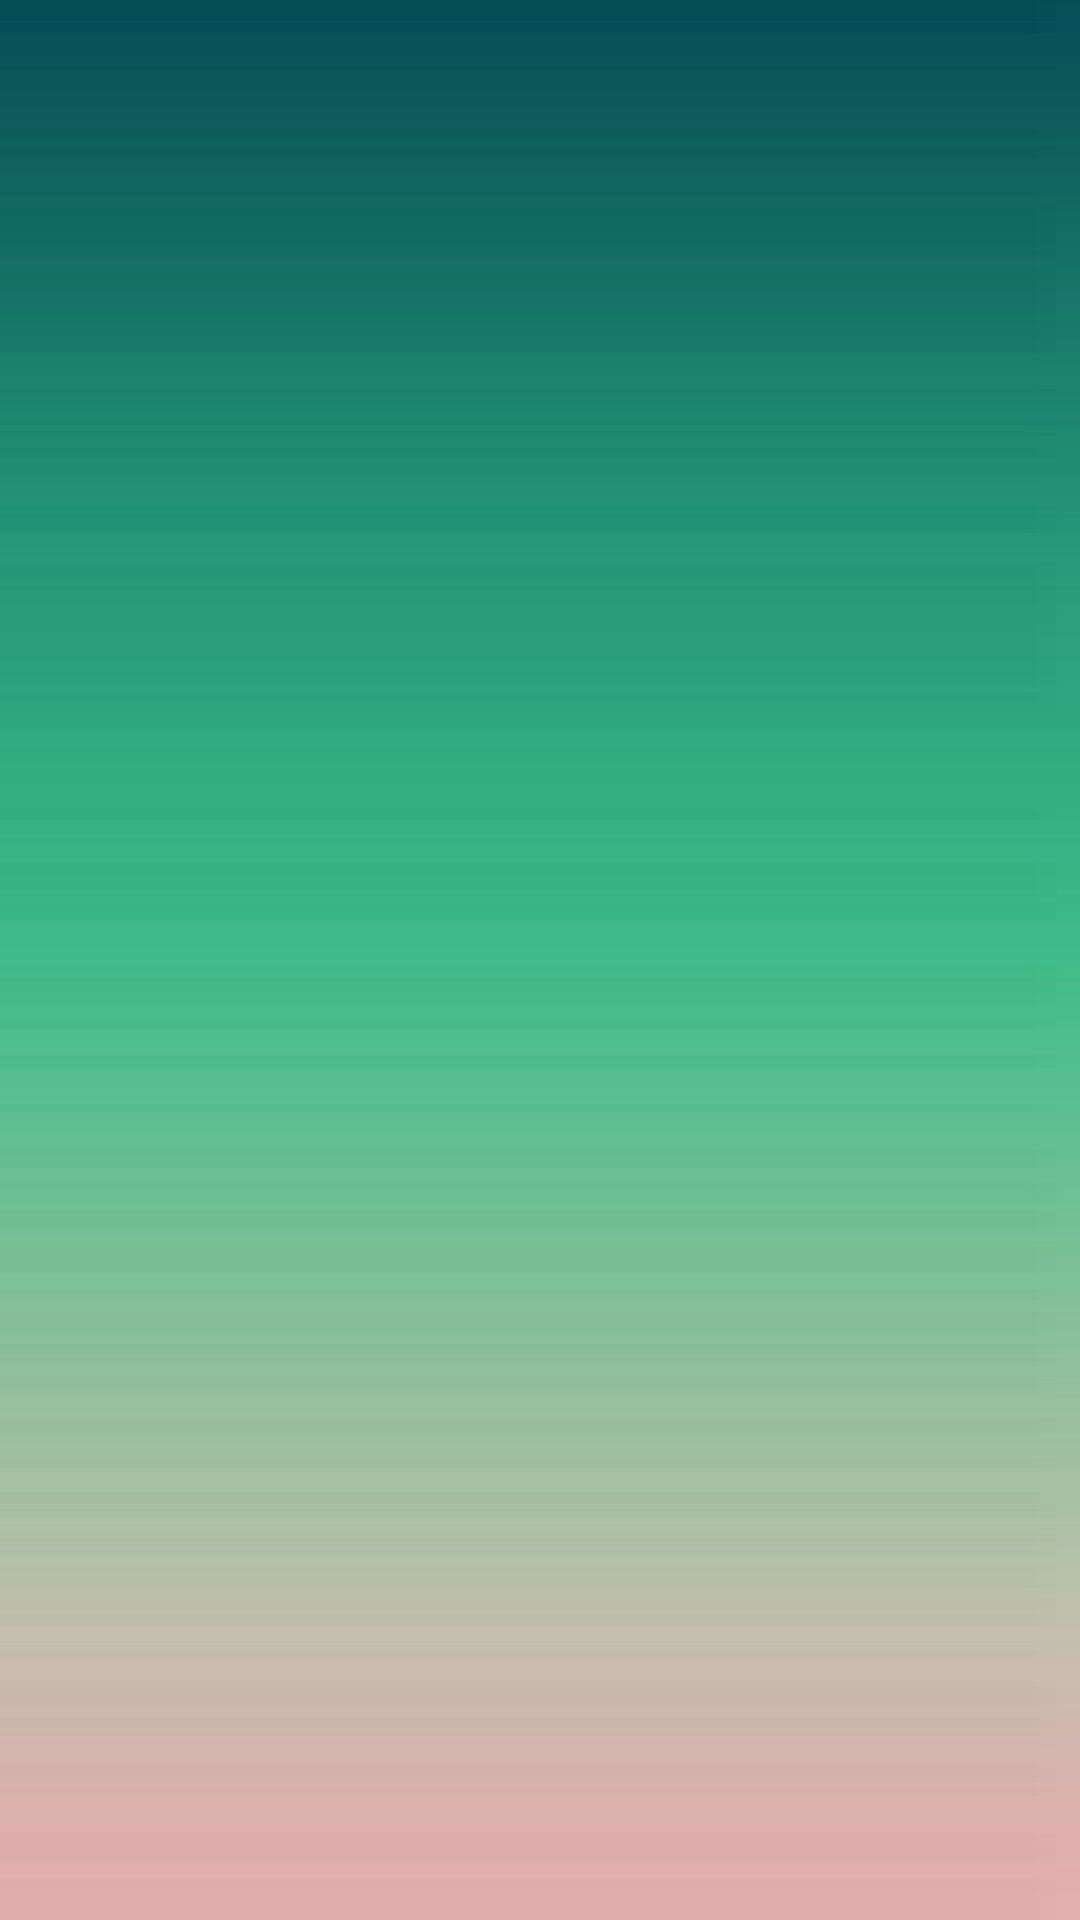 Ios11 Background Green Blur Gradation Iphone 8 Wallpapers Apple